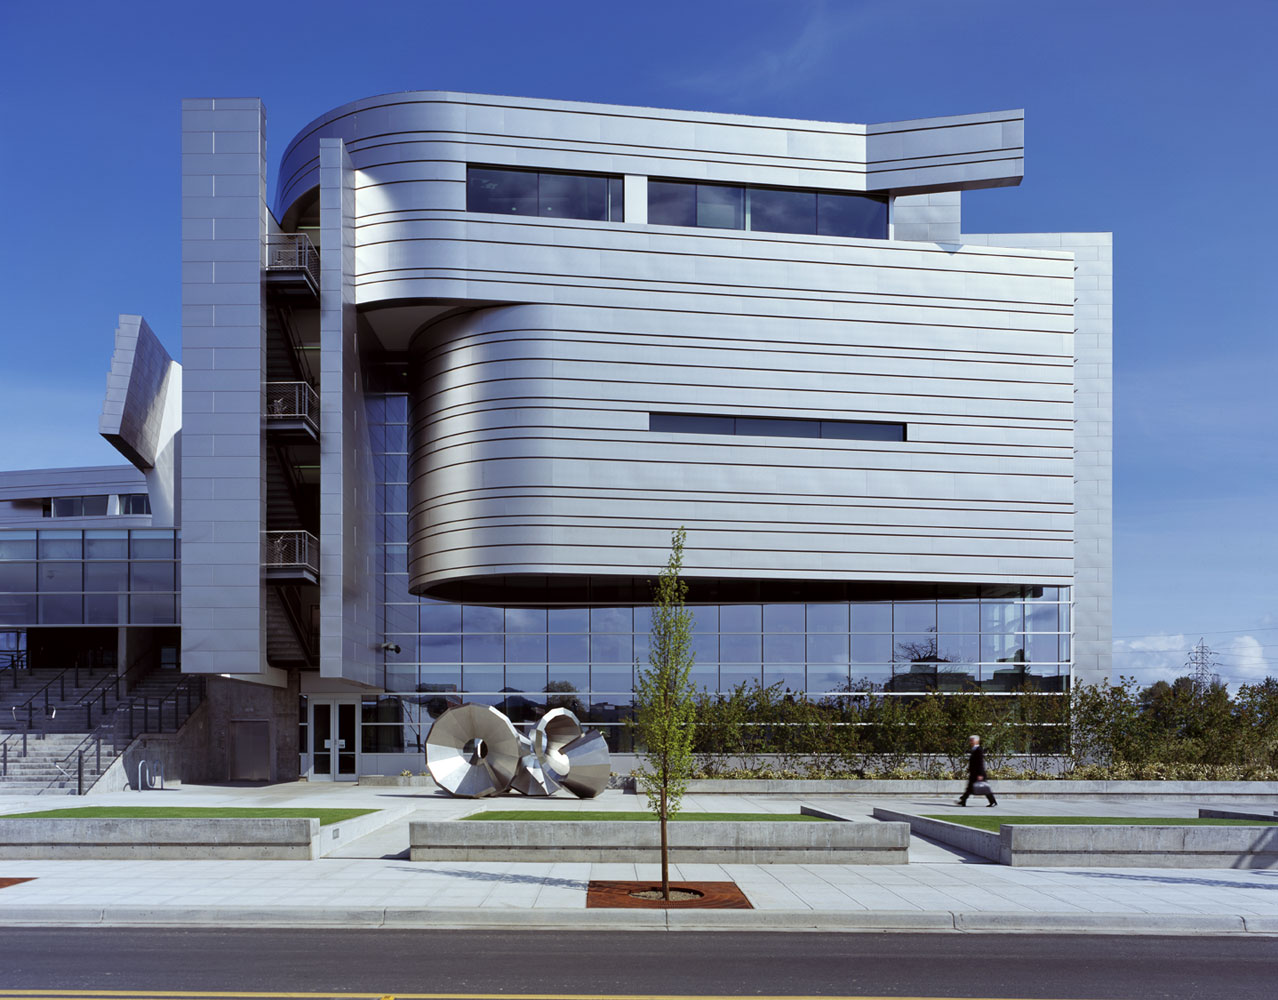 Roland halbe architectural photography for Architects eugene oregon